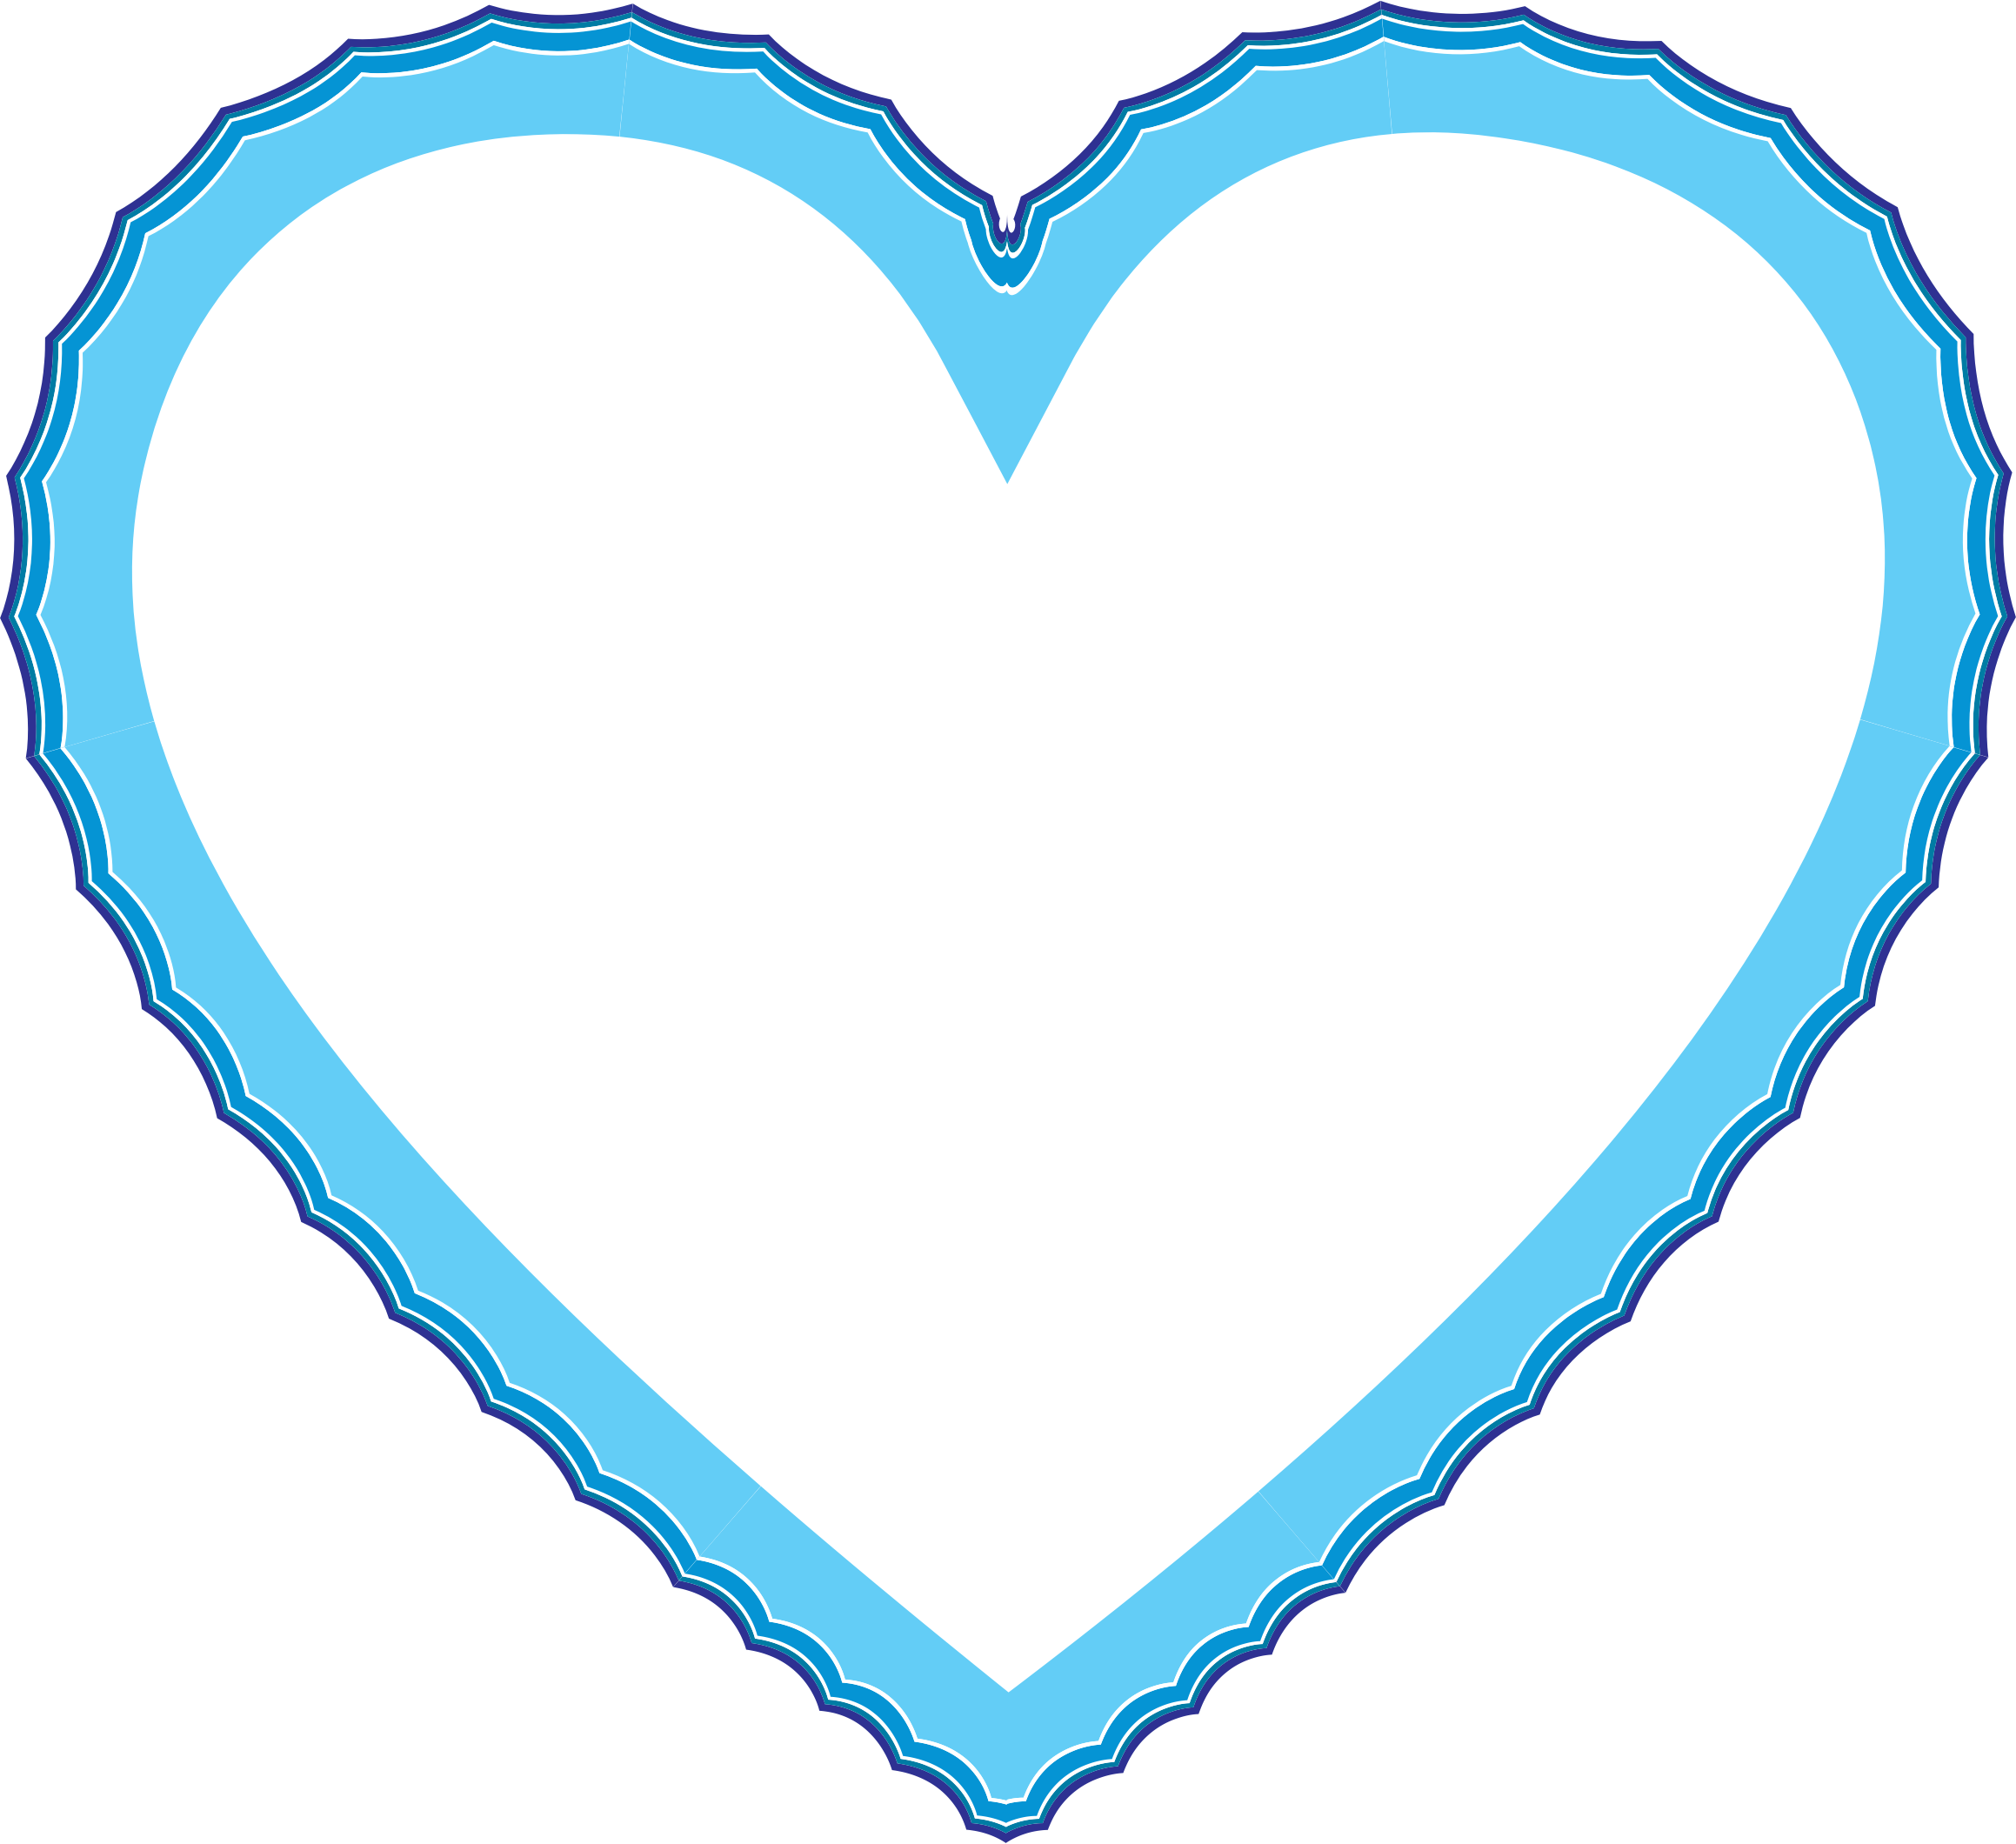 Heart clipart water. Waves frame big image